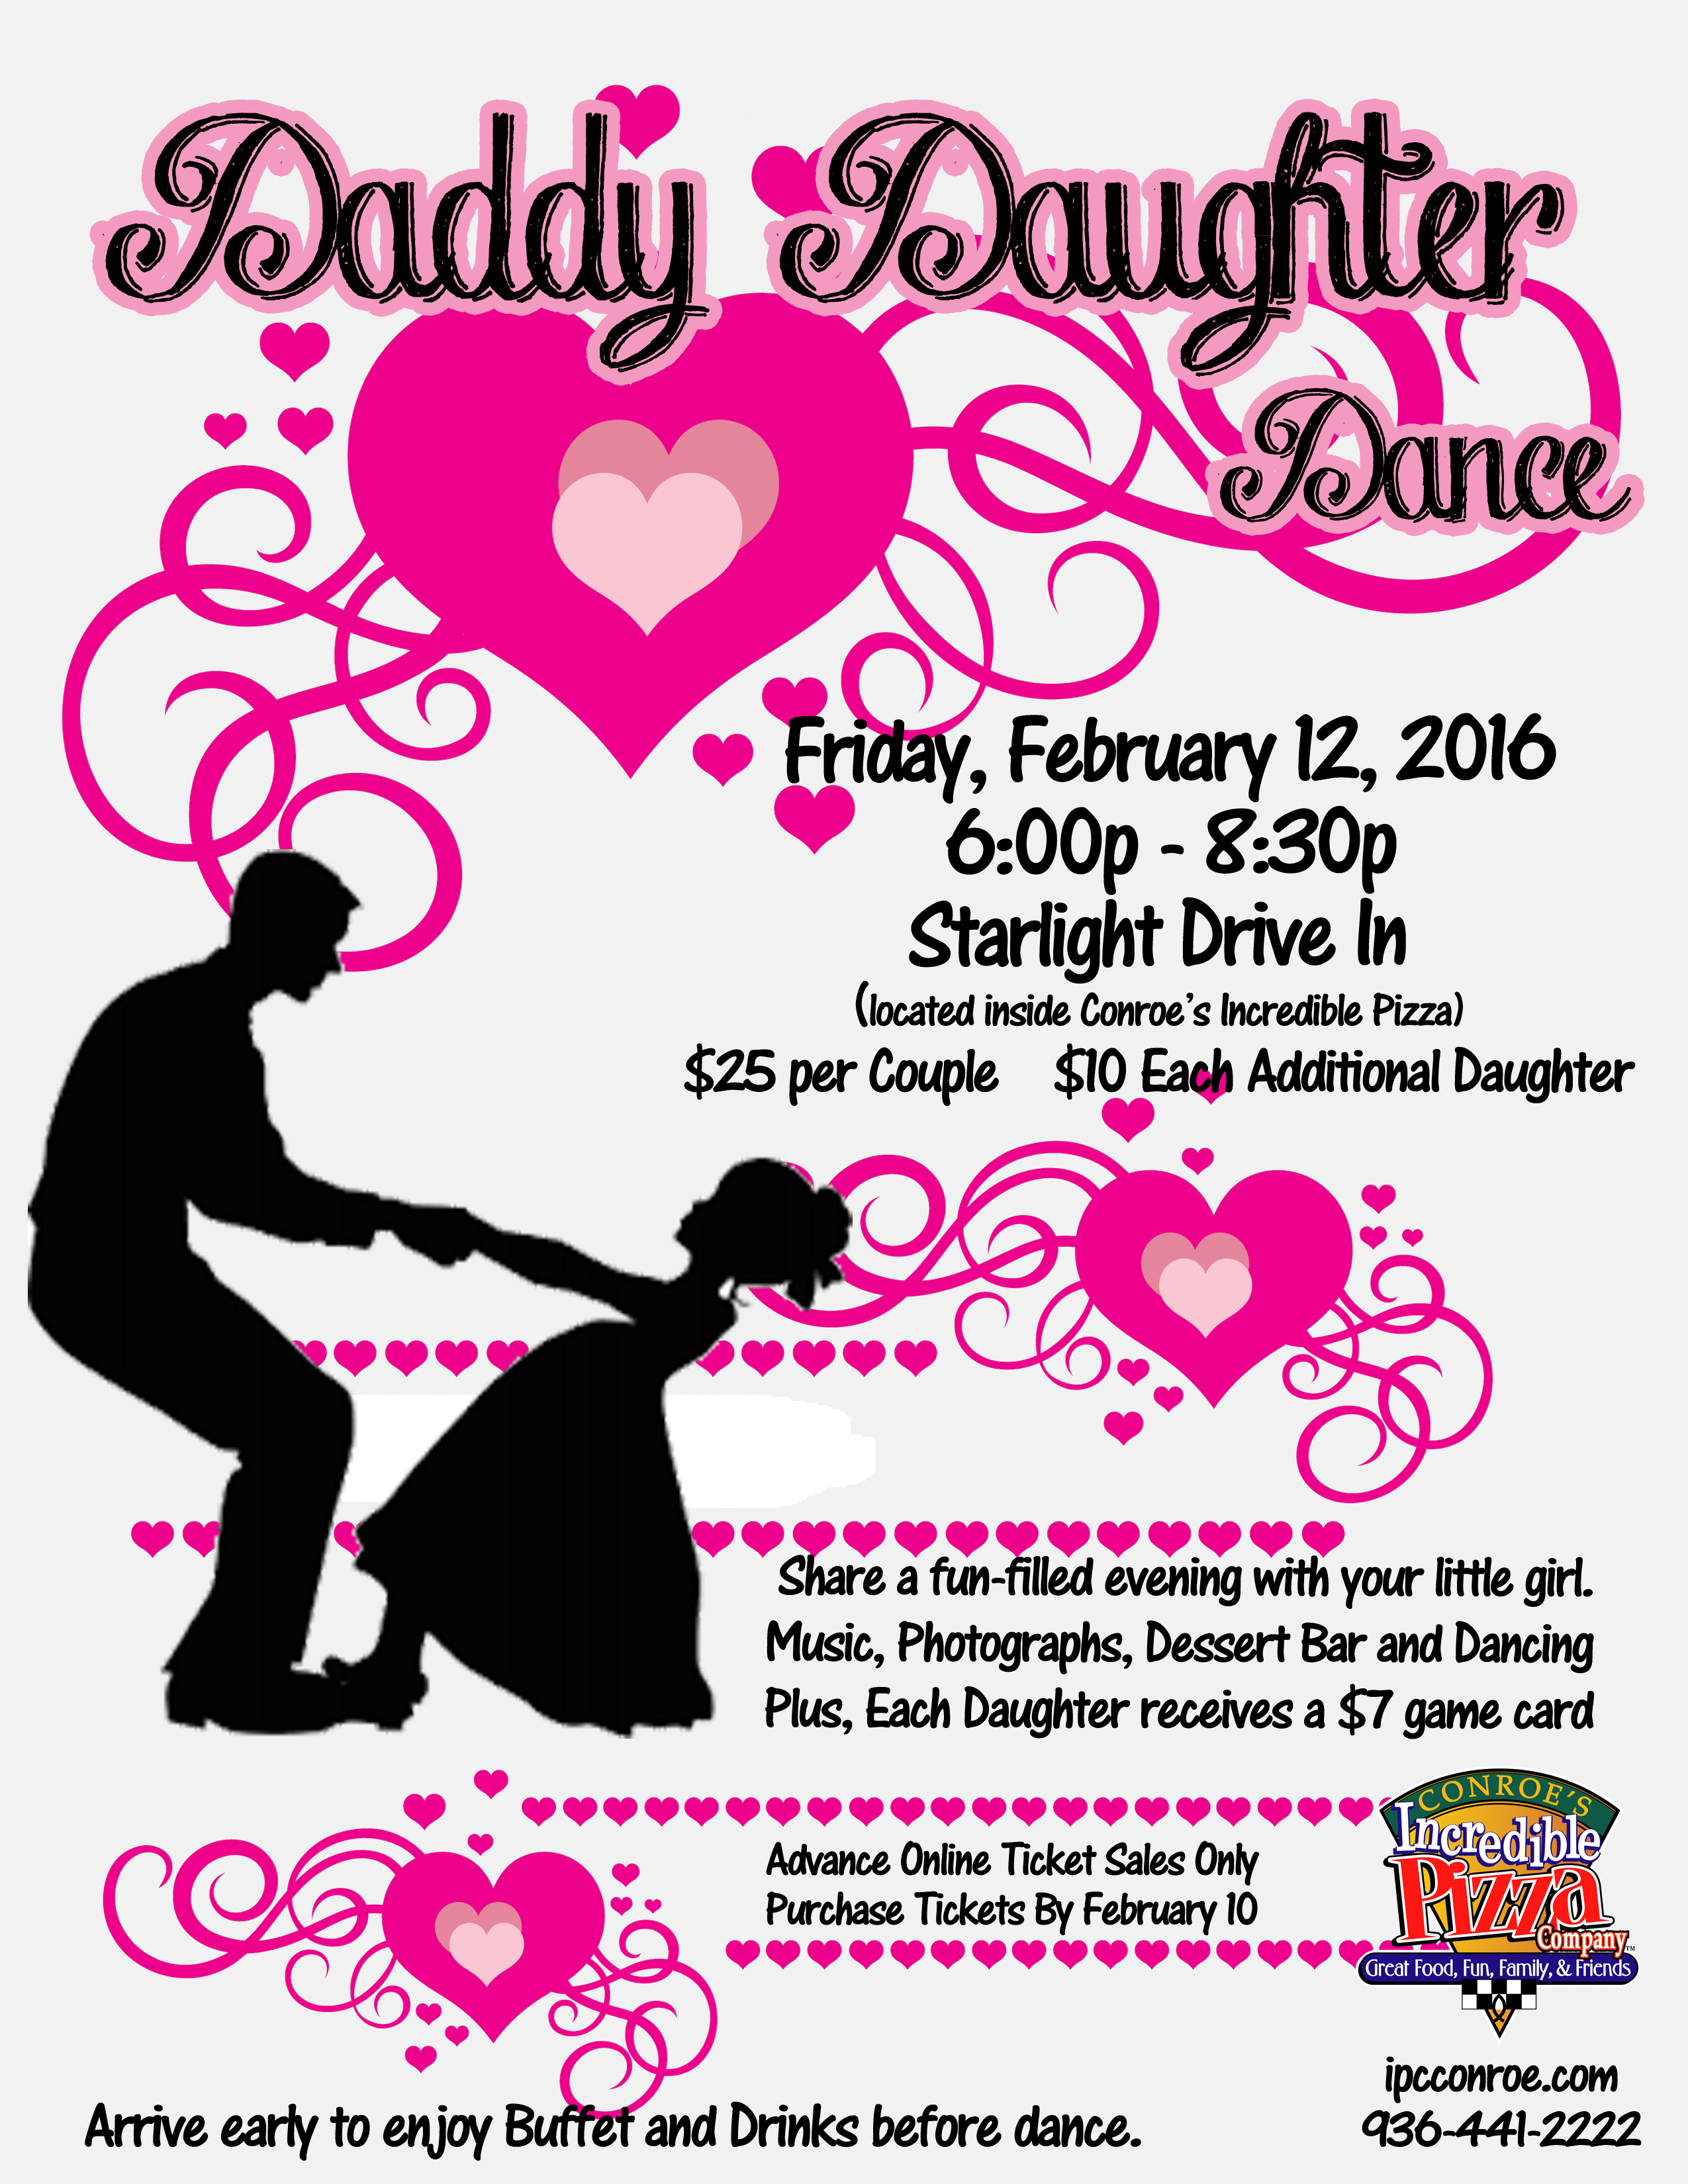 Daddy Daughter Dance  Feb 12  Incredible Pizza Company  Enjoy